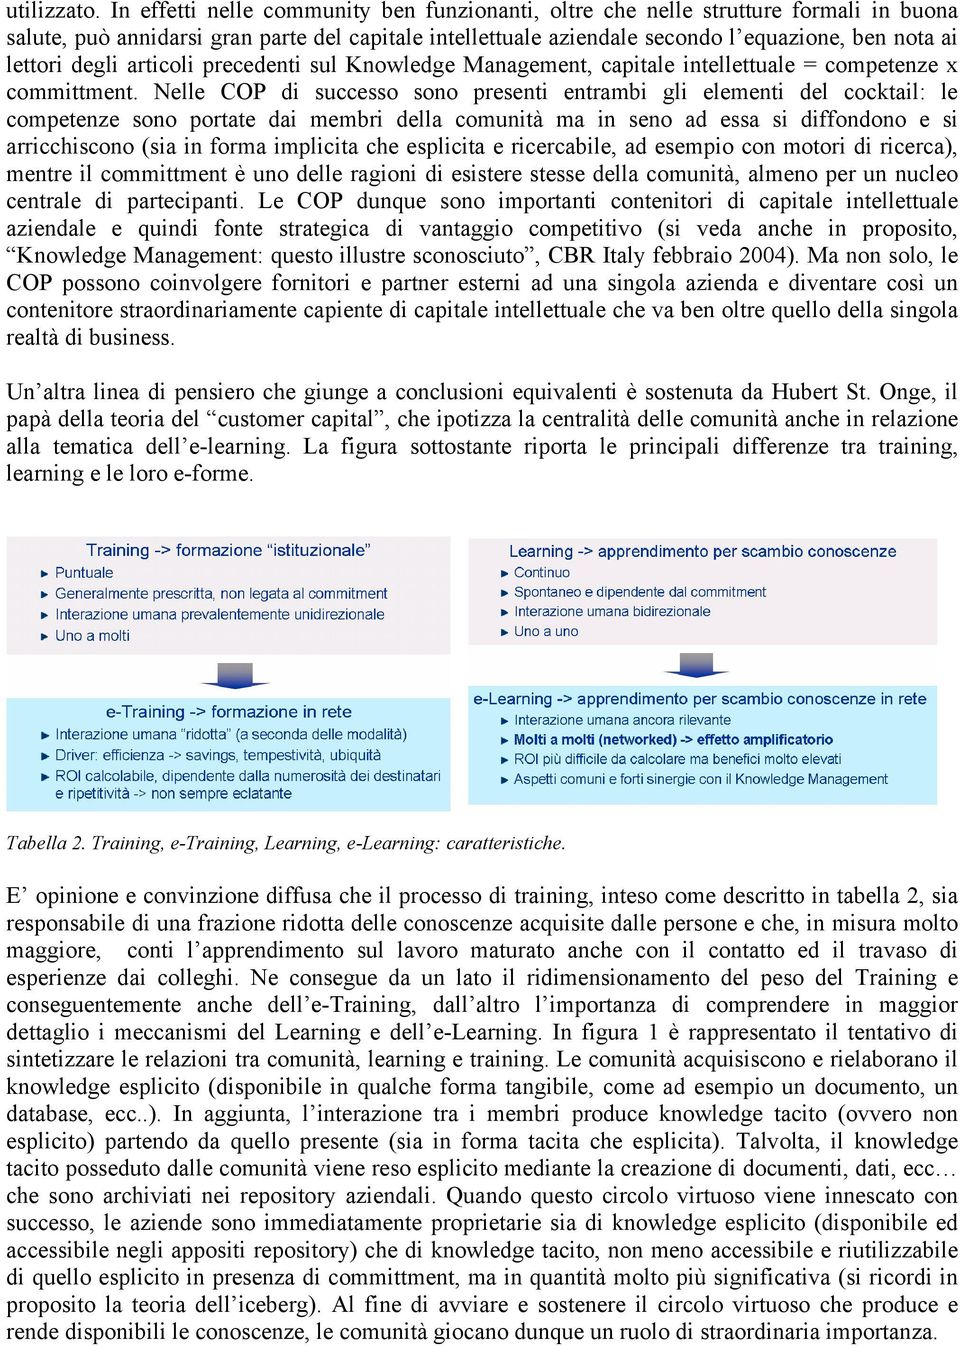 degli articoli precedenti sul Knowledge Management, capitale intellettuale = competenze x committment.